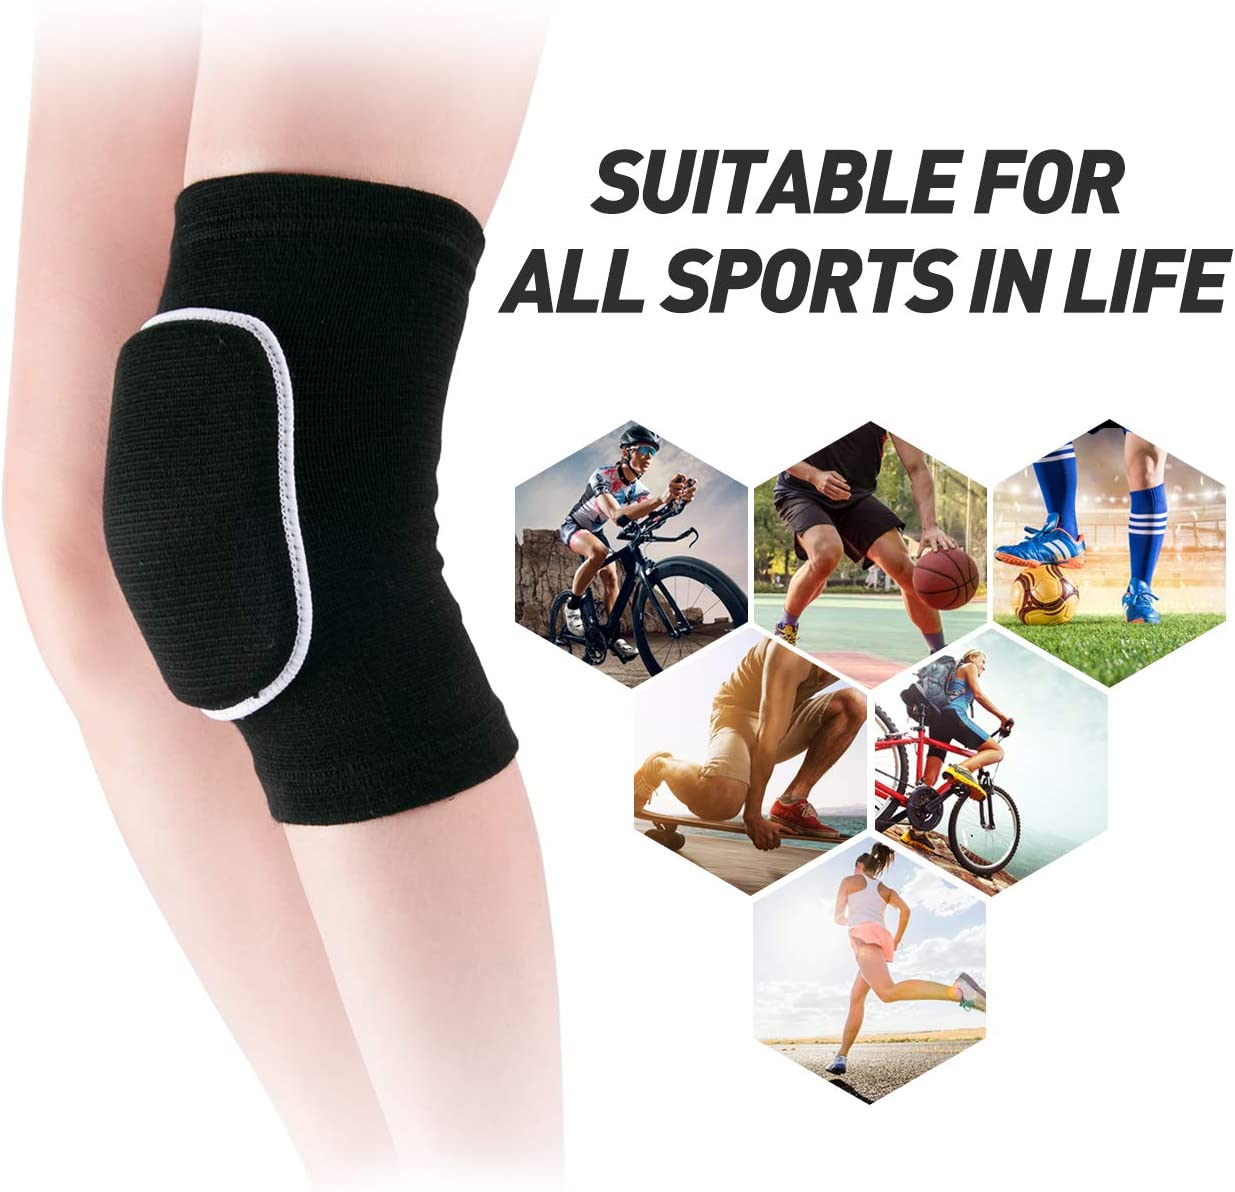 JMOKA Non-Slip Knee Brace Soft Knee Pads Breathable Knee Compression Sleeve for Dance Wrestling Volleyball Basketball Running Football Jogging Cycling Arthritis Relief Meniscus Tear for Women Men : Sports & Outdoors